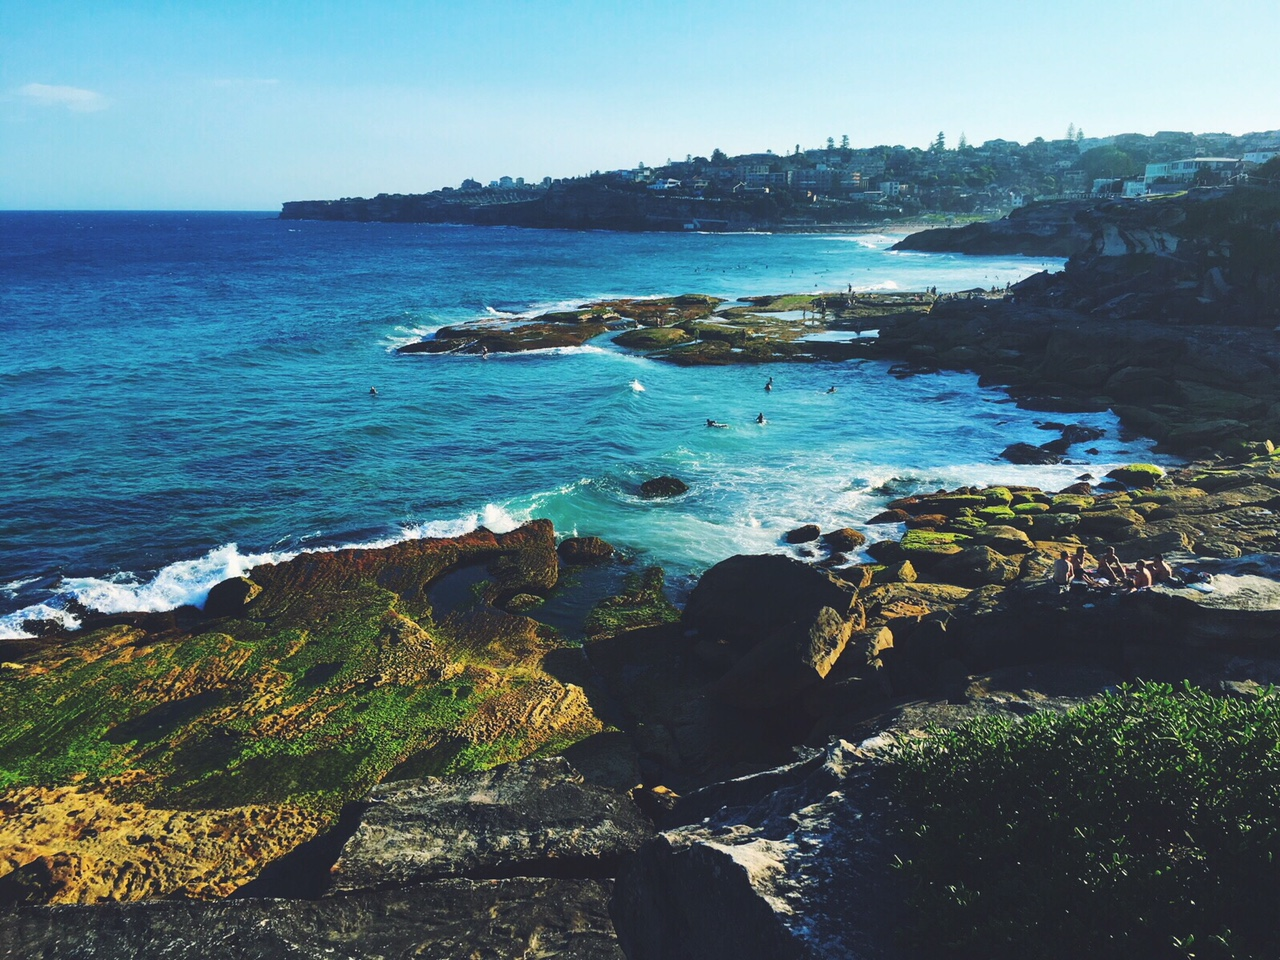 Bondi to Coogee coastal walk/ run = pure bliss.